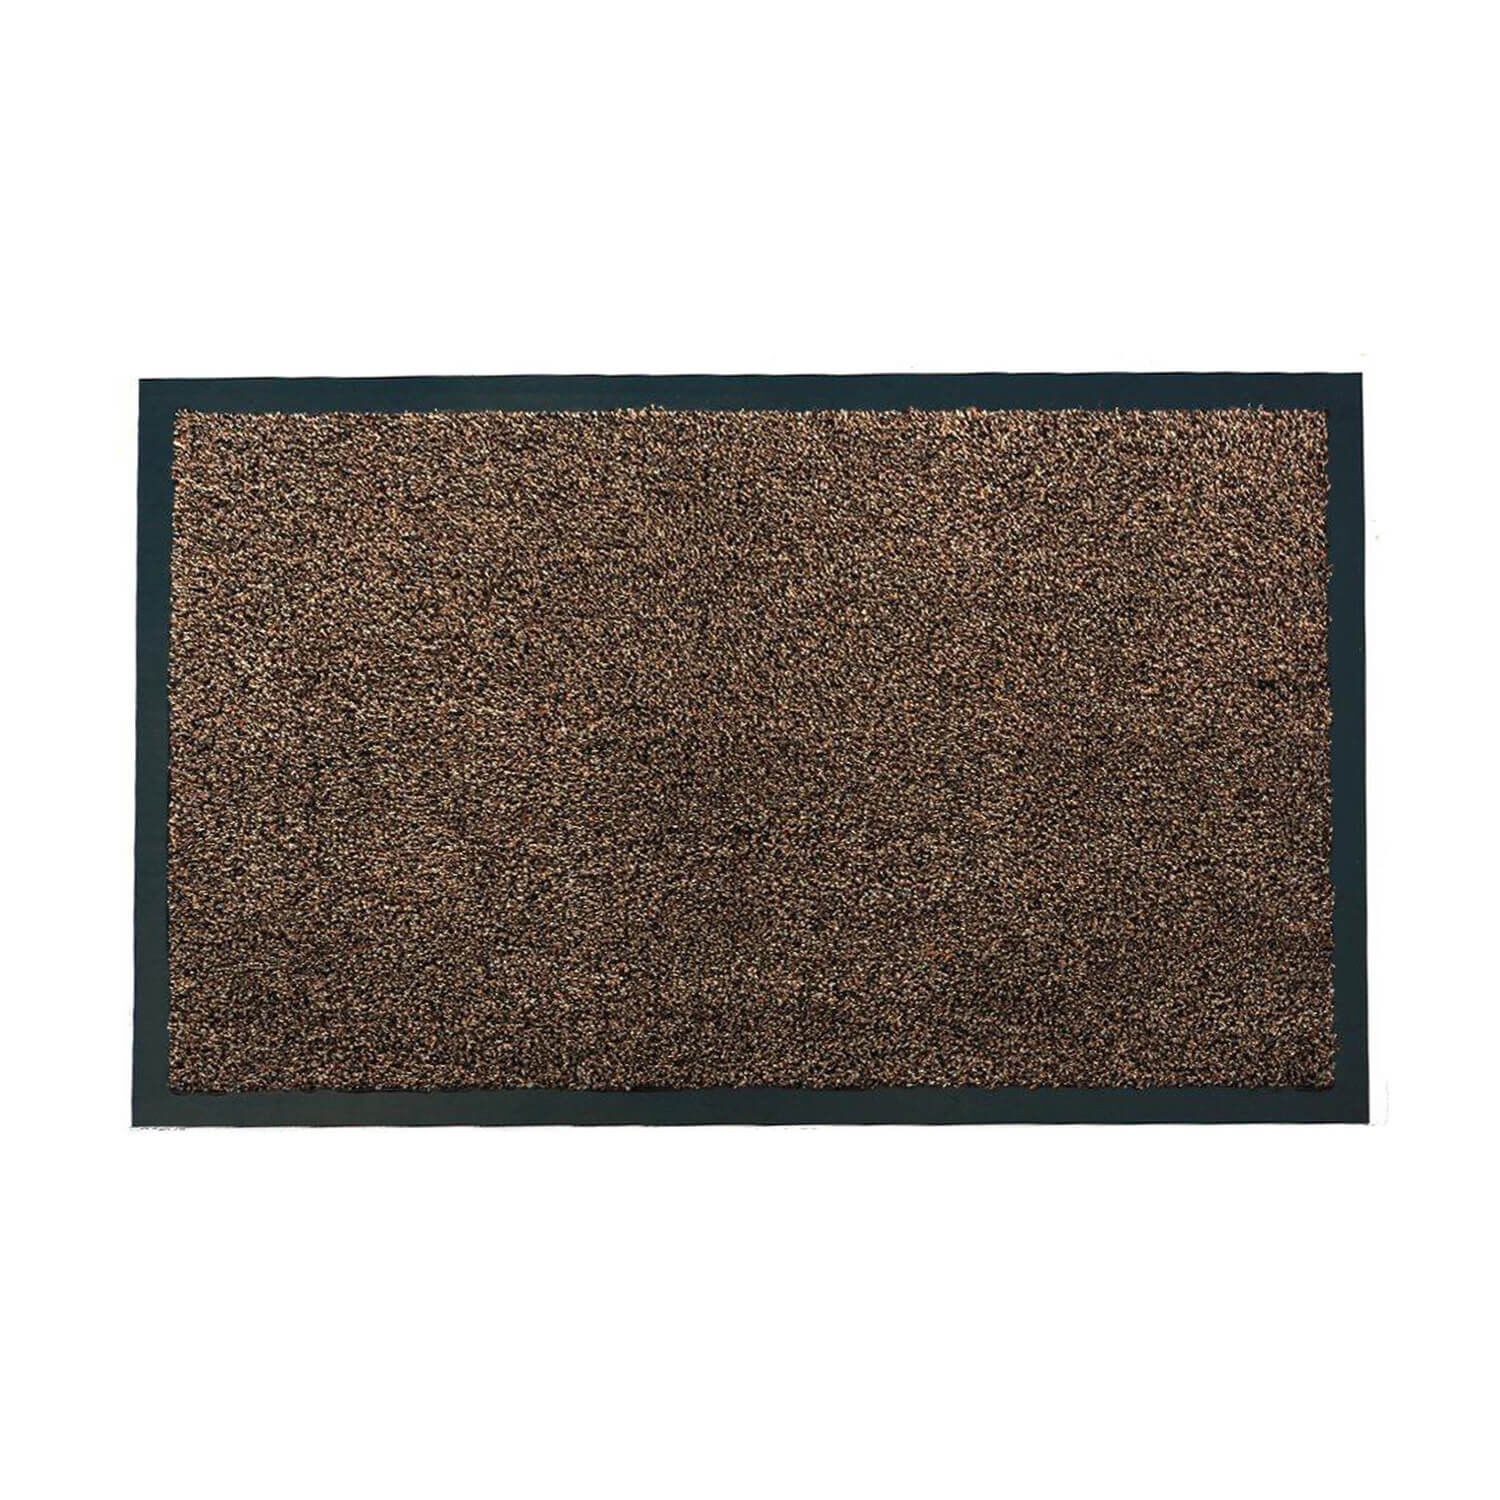 Chestnut Grove Washable Brown Door Mat  sc 1 st  Homestore and More & Door Mats - Home Store + More